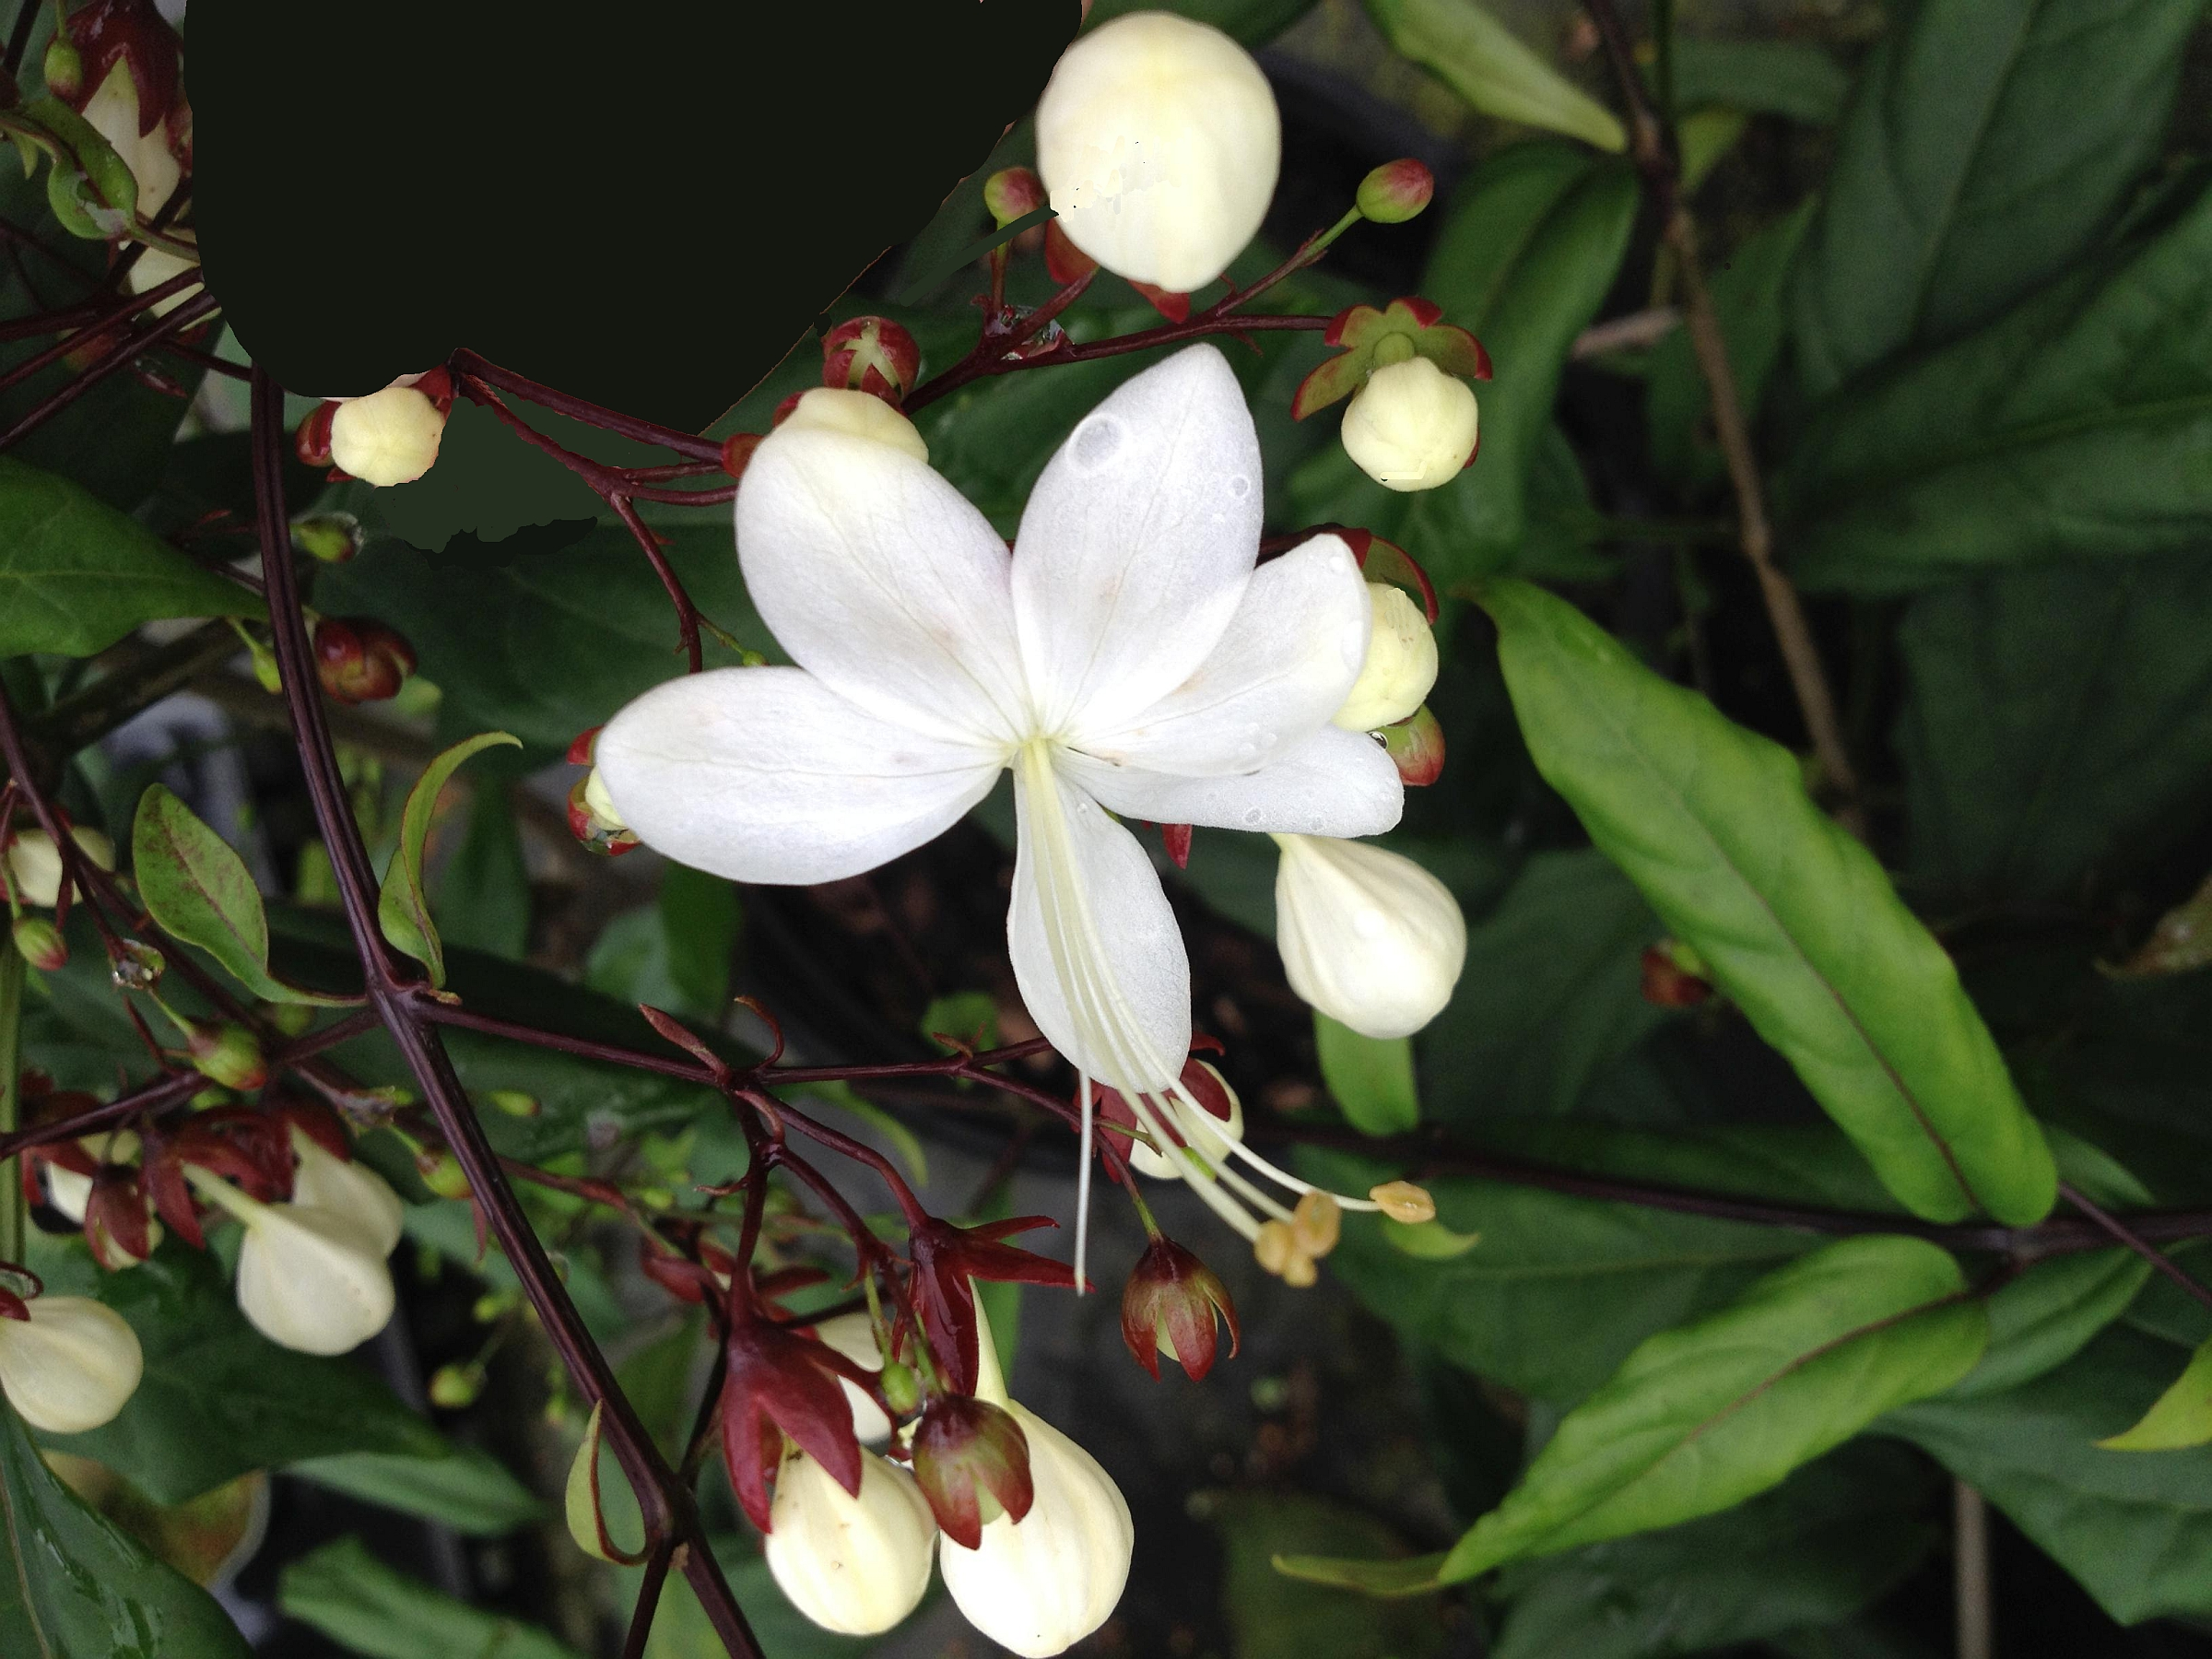 Light bulbs tropical live plant chains of glory unusual white light bulbs tropical live plant chains of glory unusual white flowers clerodendrum smithianum starter size 4 mightylinksfo